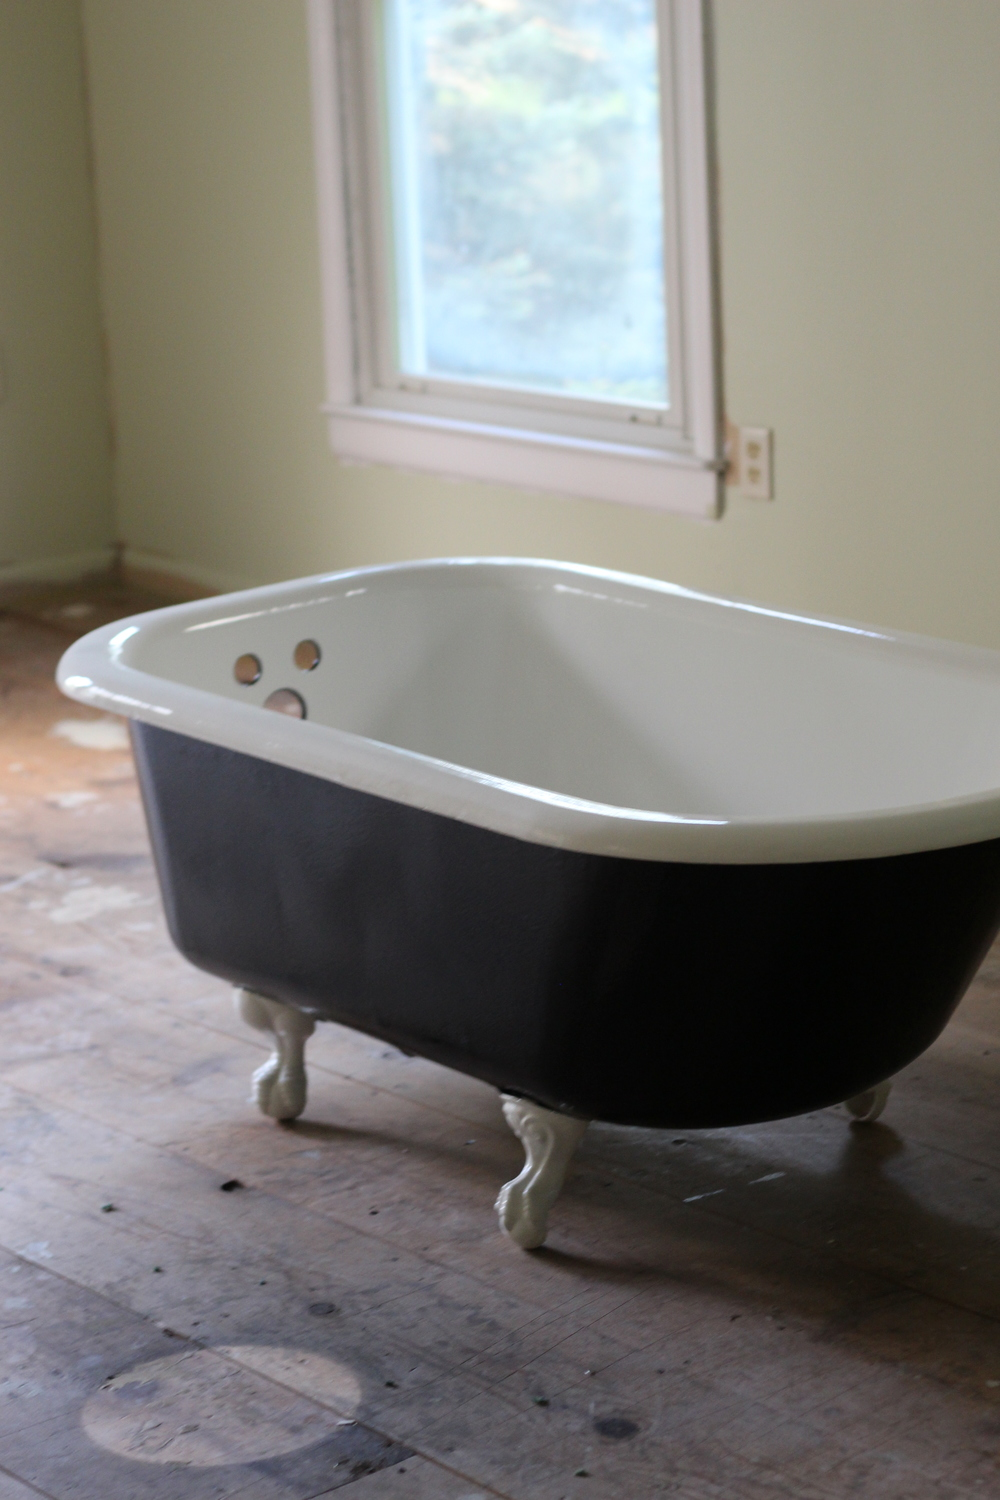 Clawfoot tub after reglazing